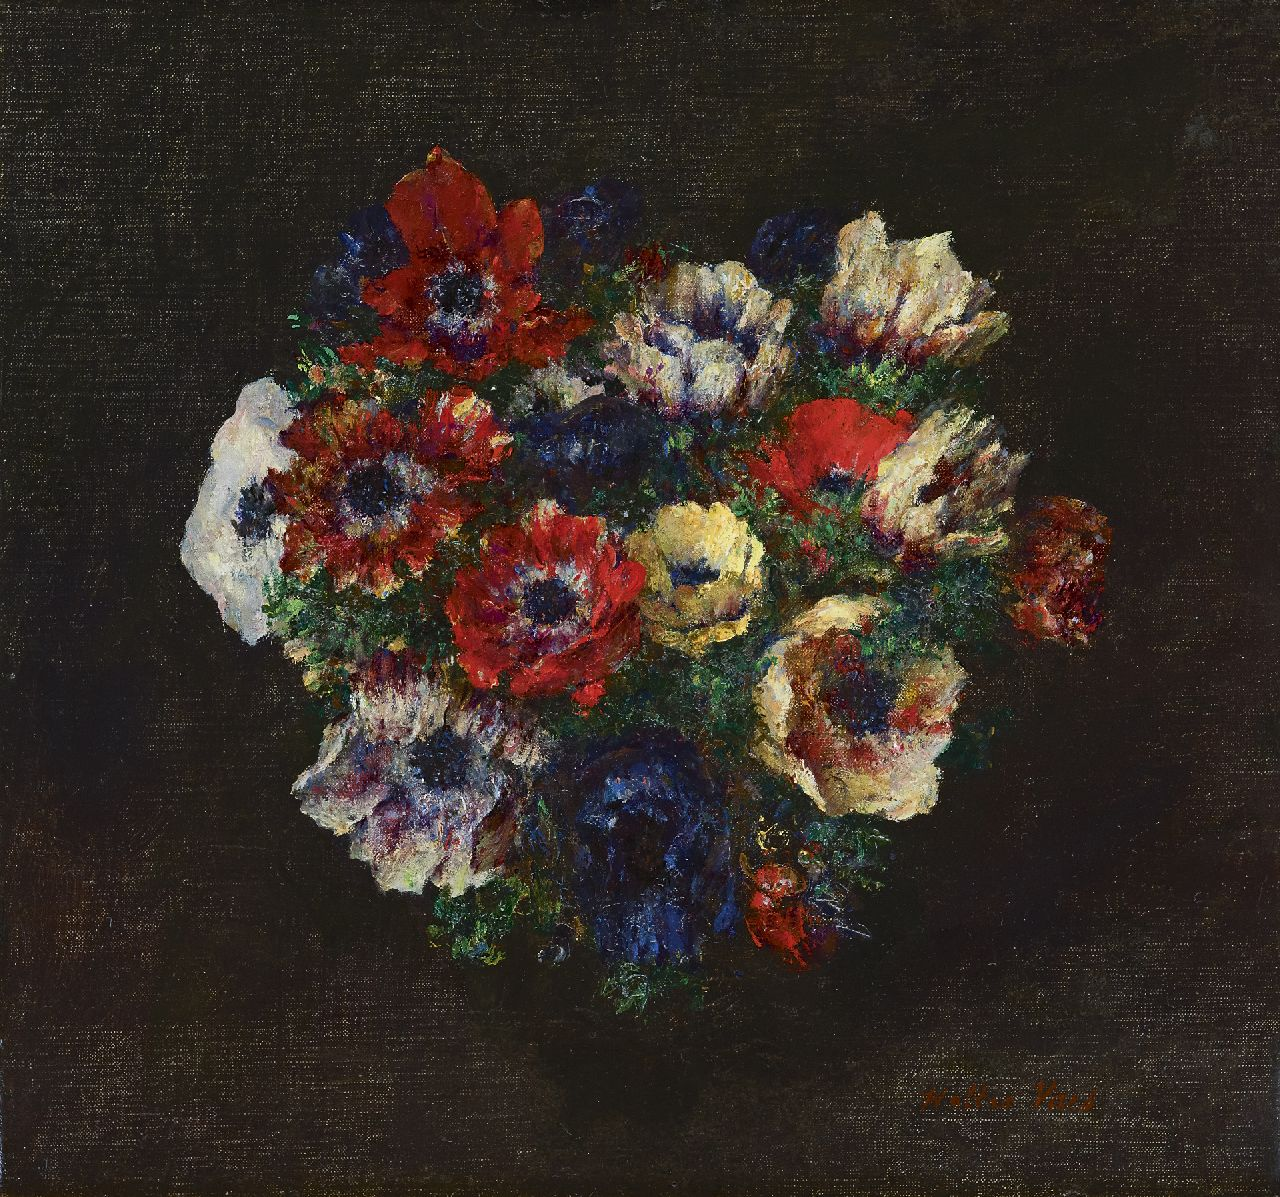 Vaes W.  | Walter Vaes | Paintings offered for sale | Anemones, oil on canvas 35.2 x 37.8 cm, signed l.r.